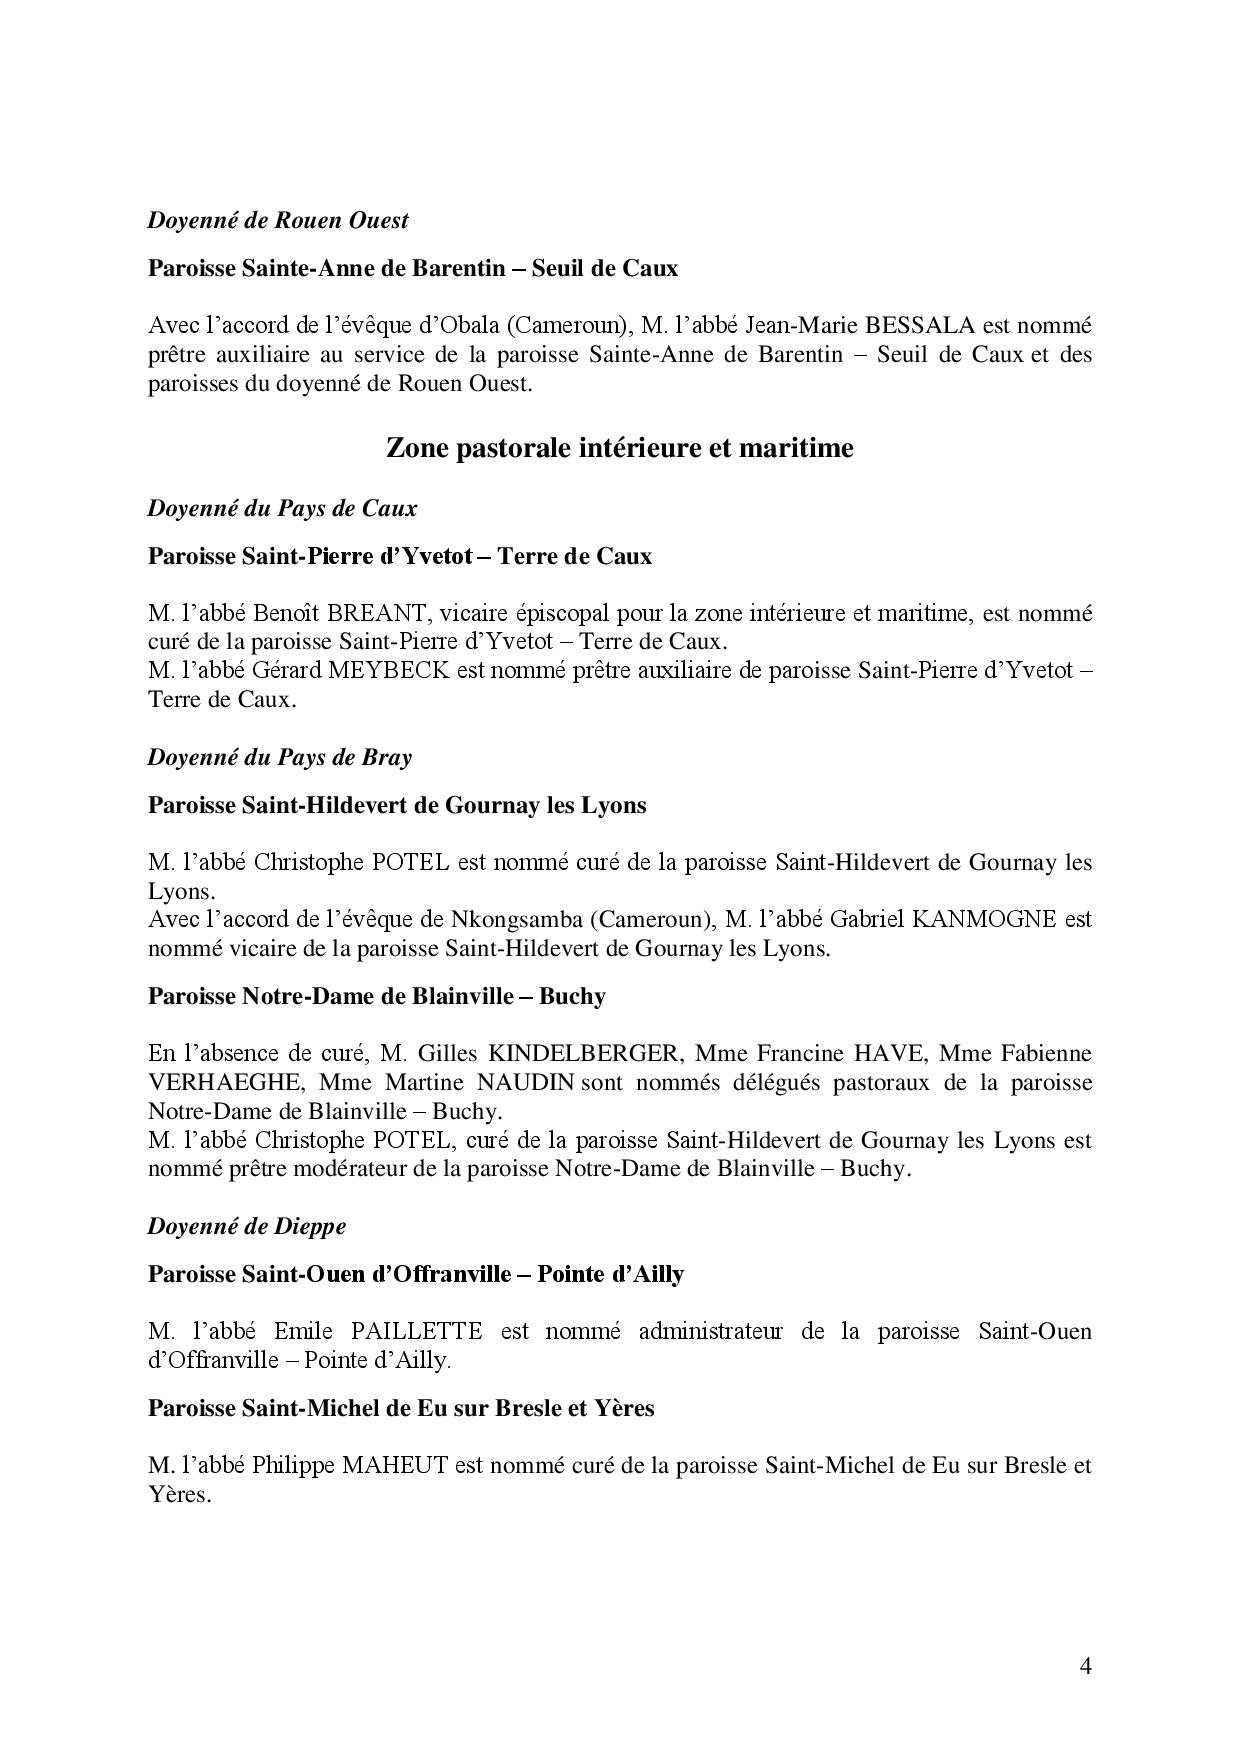 Nominations 2017-page-004